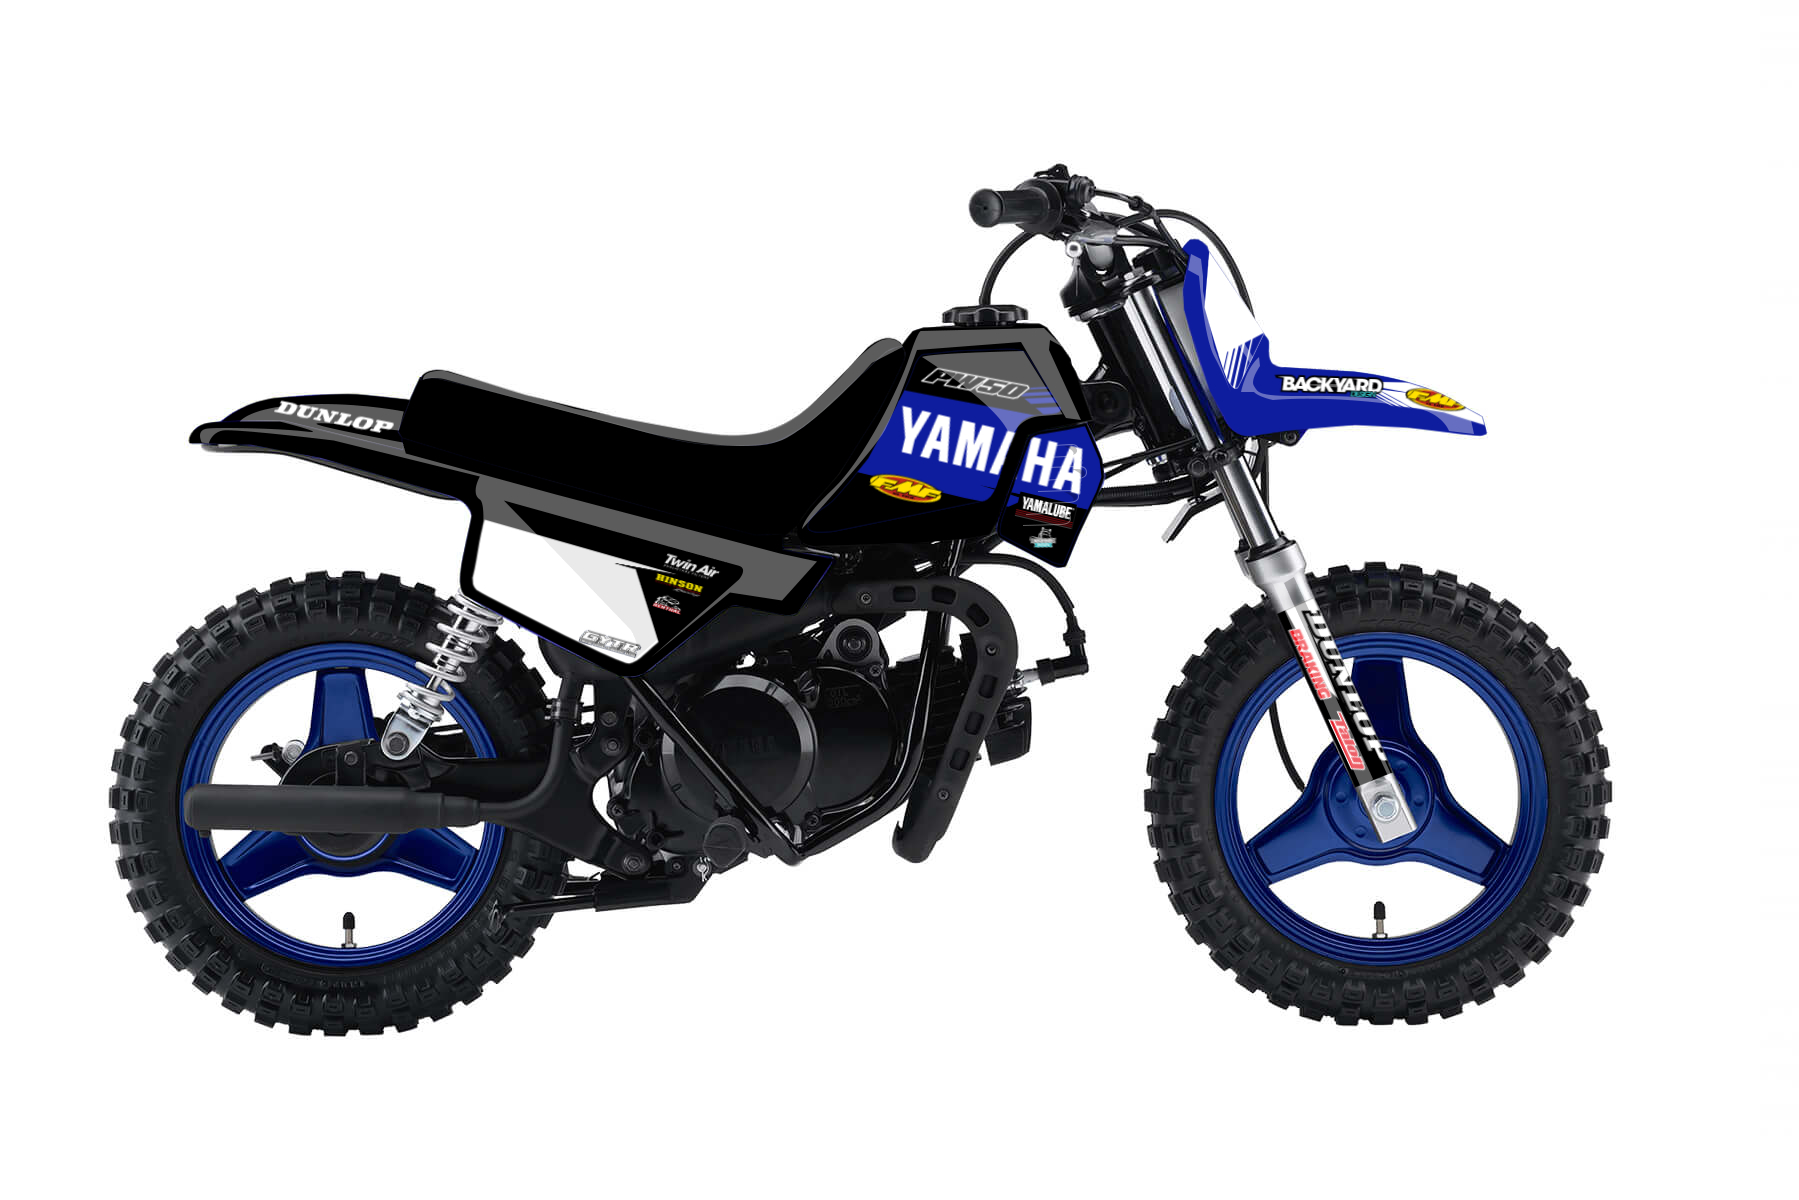 Yamaha PW 50 MX Graphic Kits  The Yamaha PW 50 is the perfect bike for your kids to start young and earn first accomplishments in the world of mx.